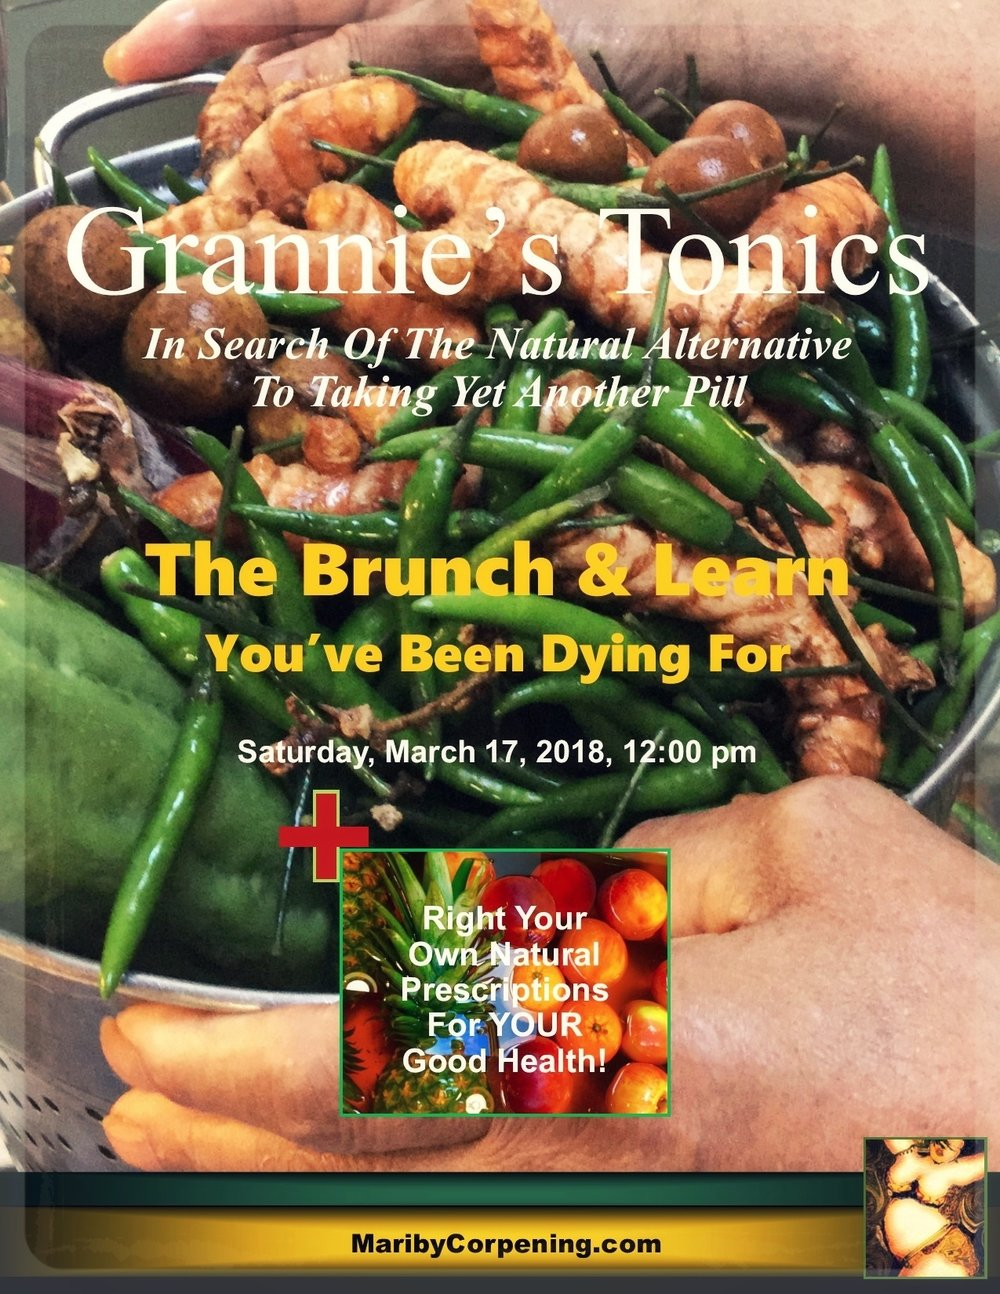 Flyer - Grannie's Tonics Brunch.jpg